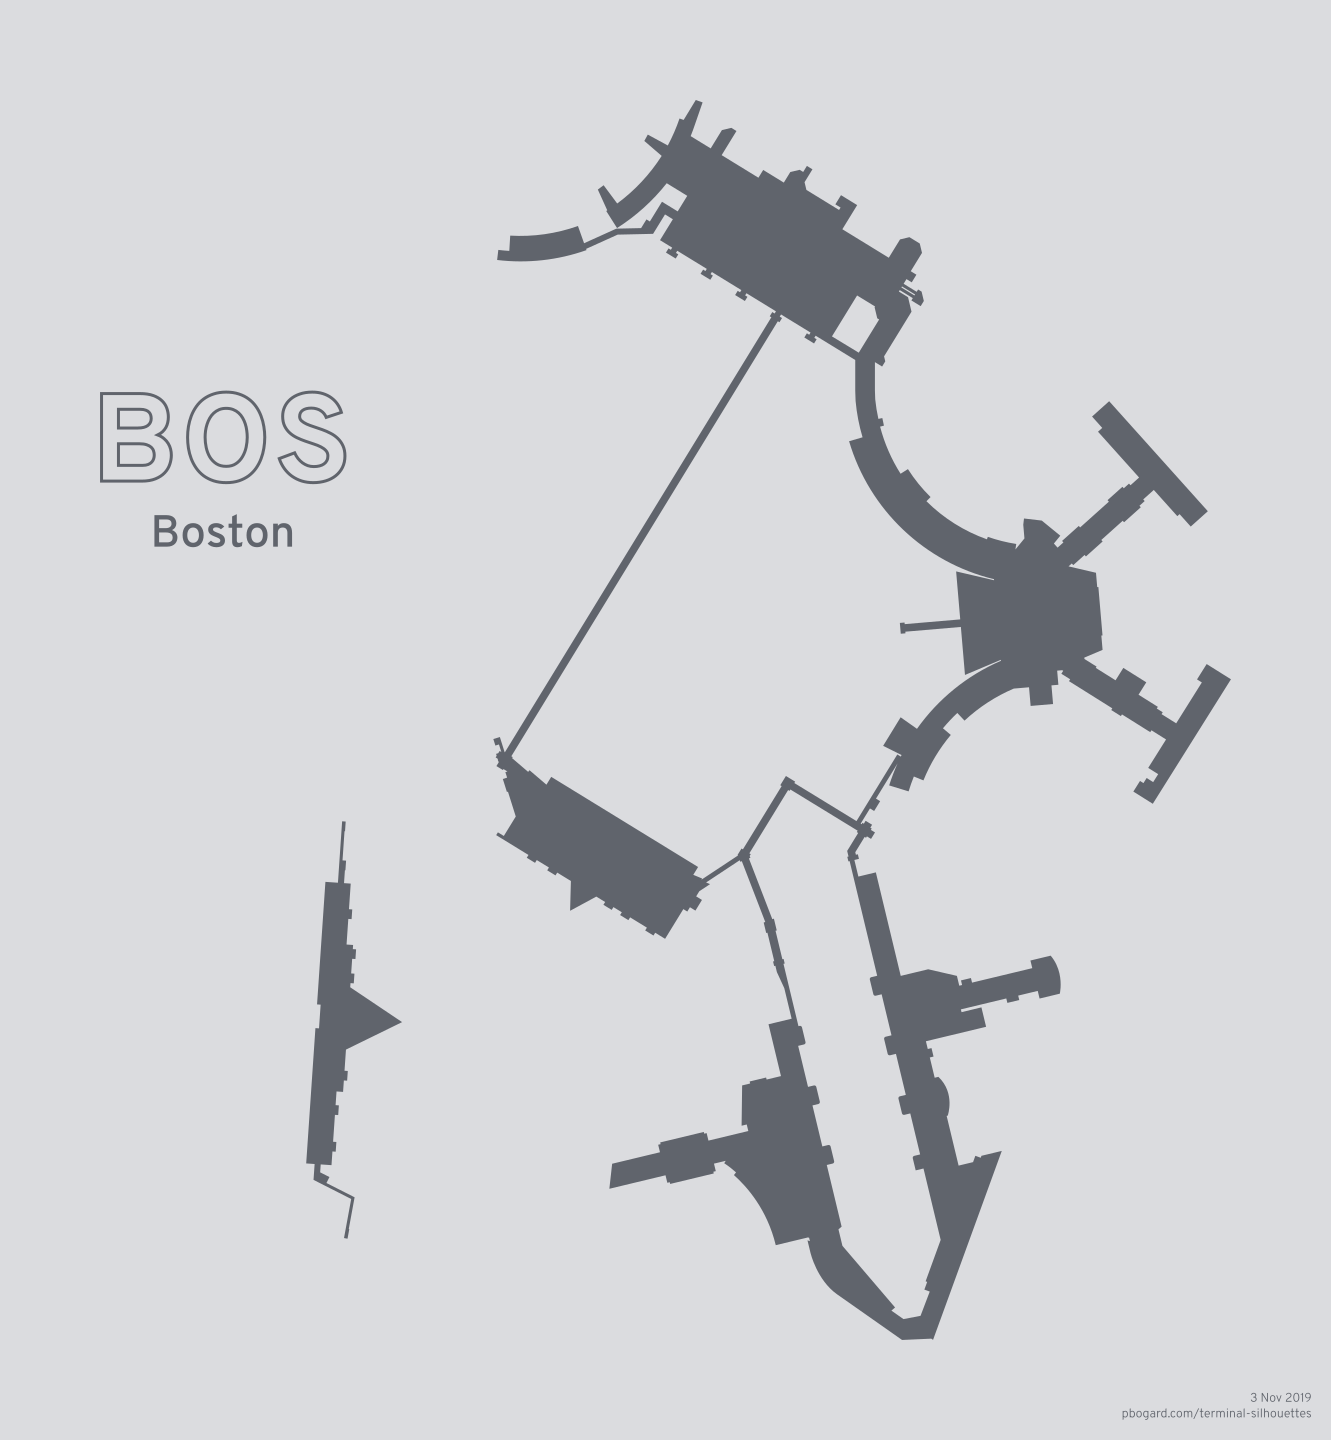 Terminal silhouette of BOS (Boston)